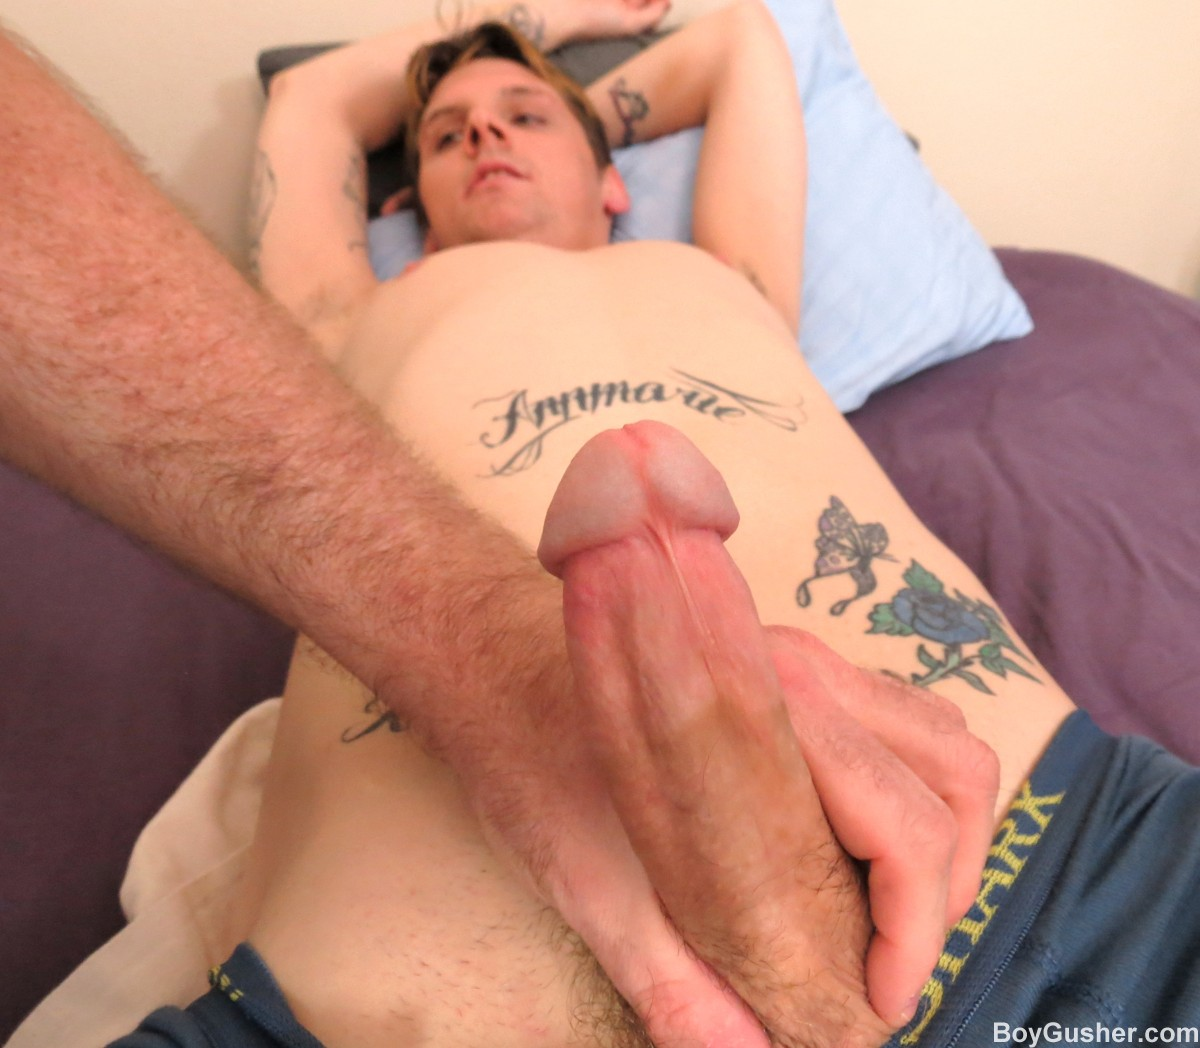 Guys jerking off mpegs gay in part 2 of